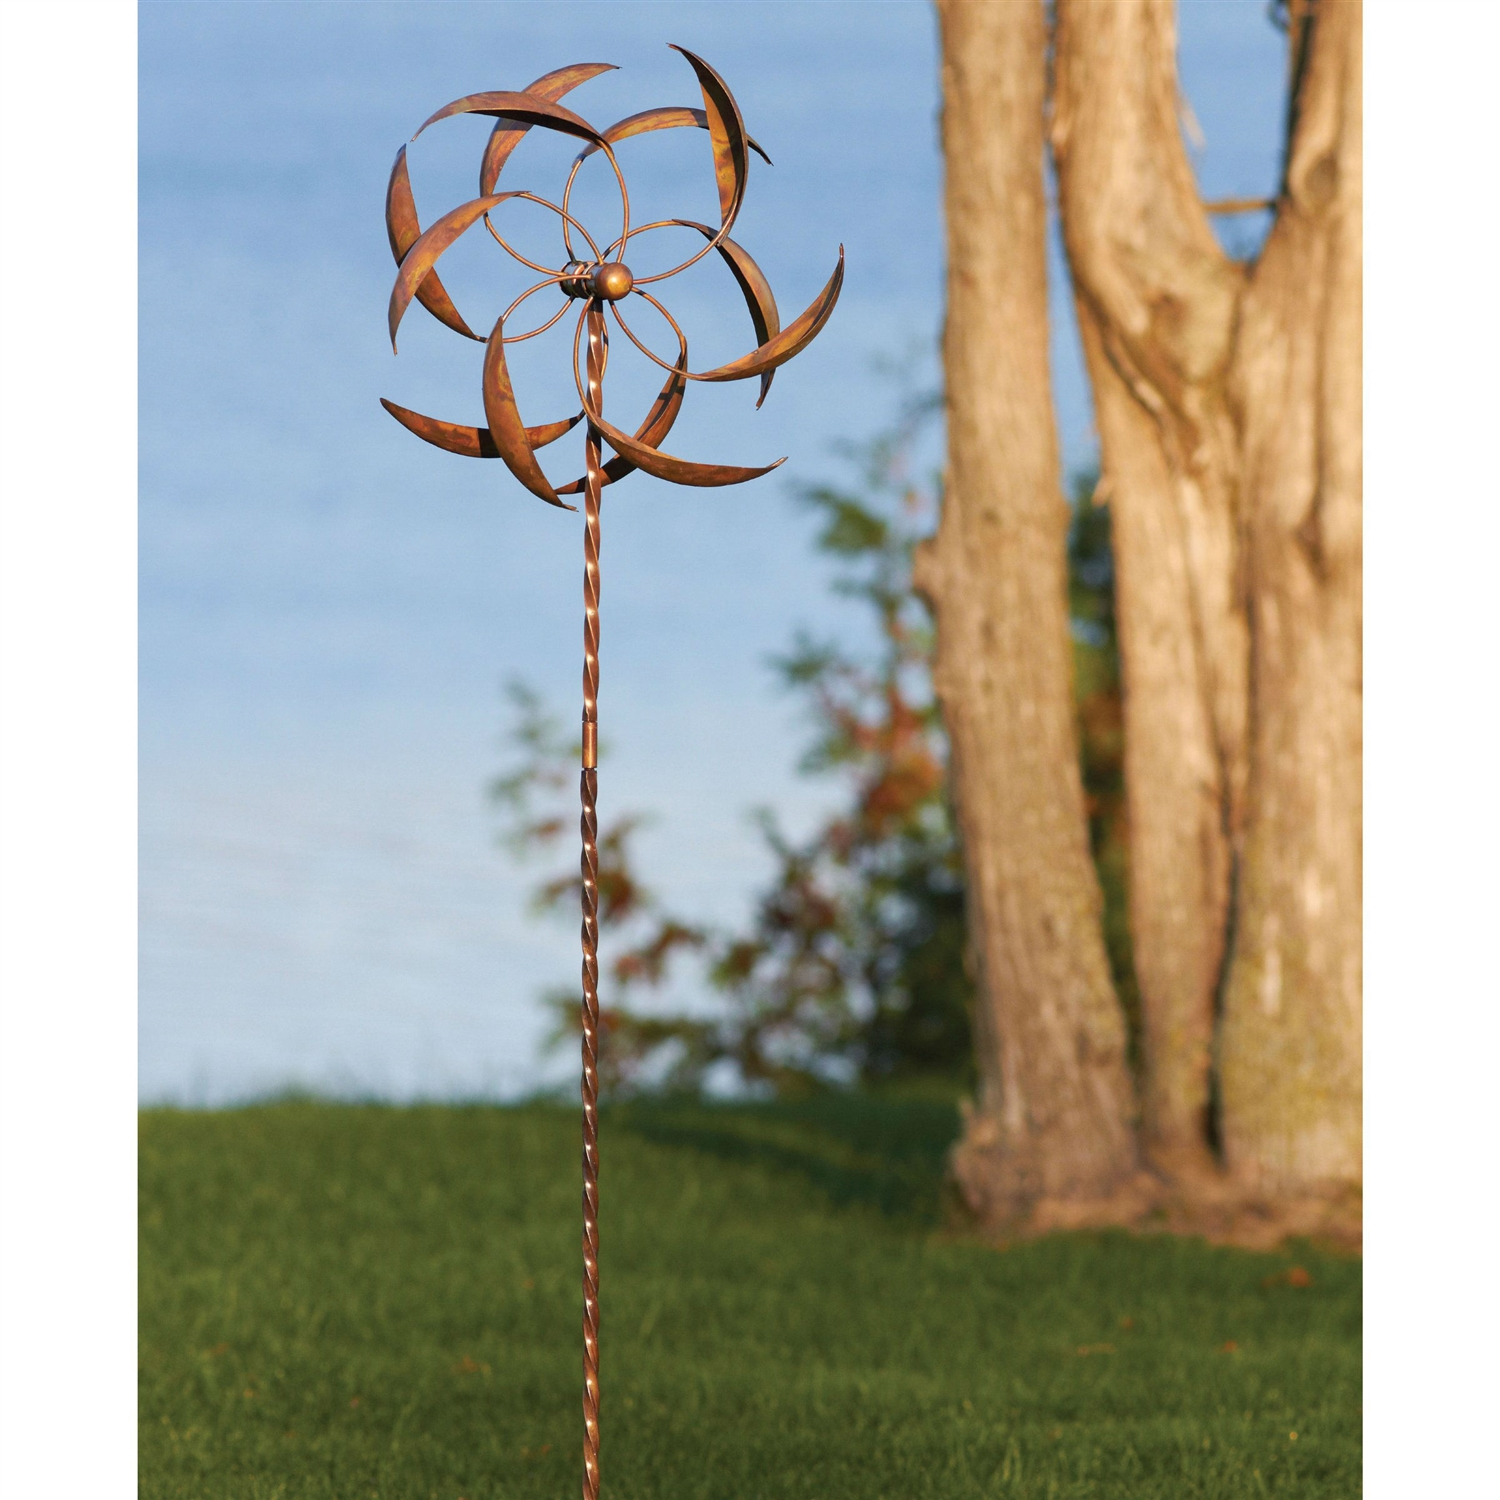 Copper Plated Metal Wind Spinner Stake for Outdoor Yard Garden ...